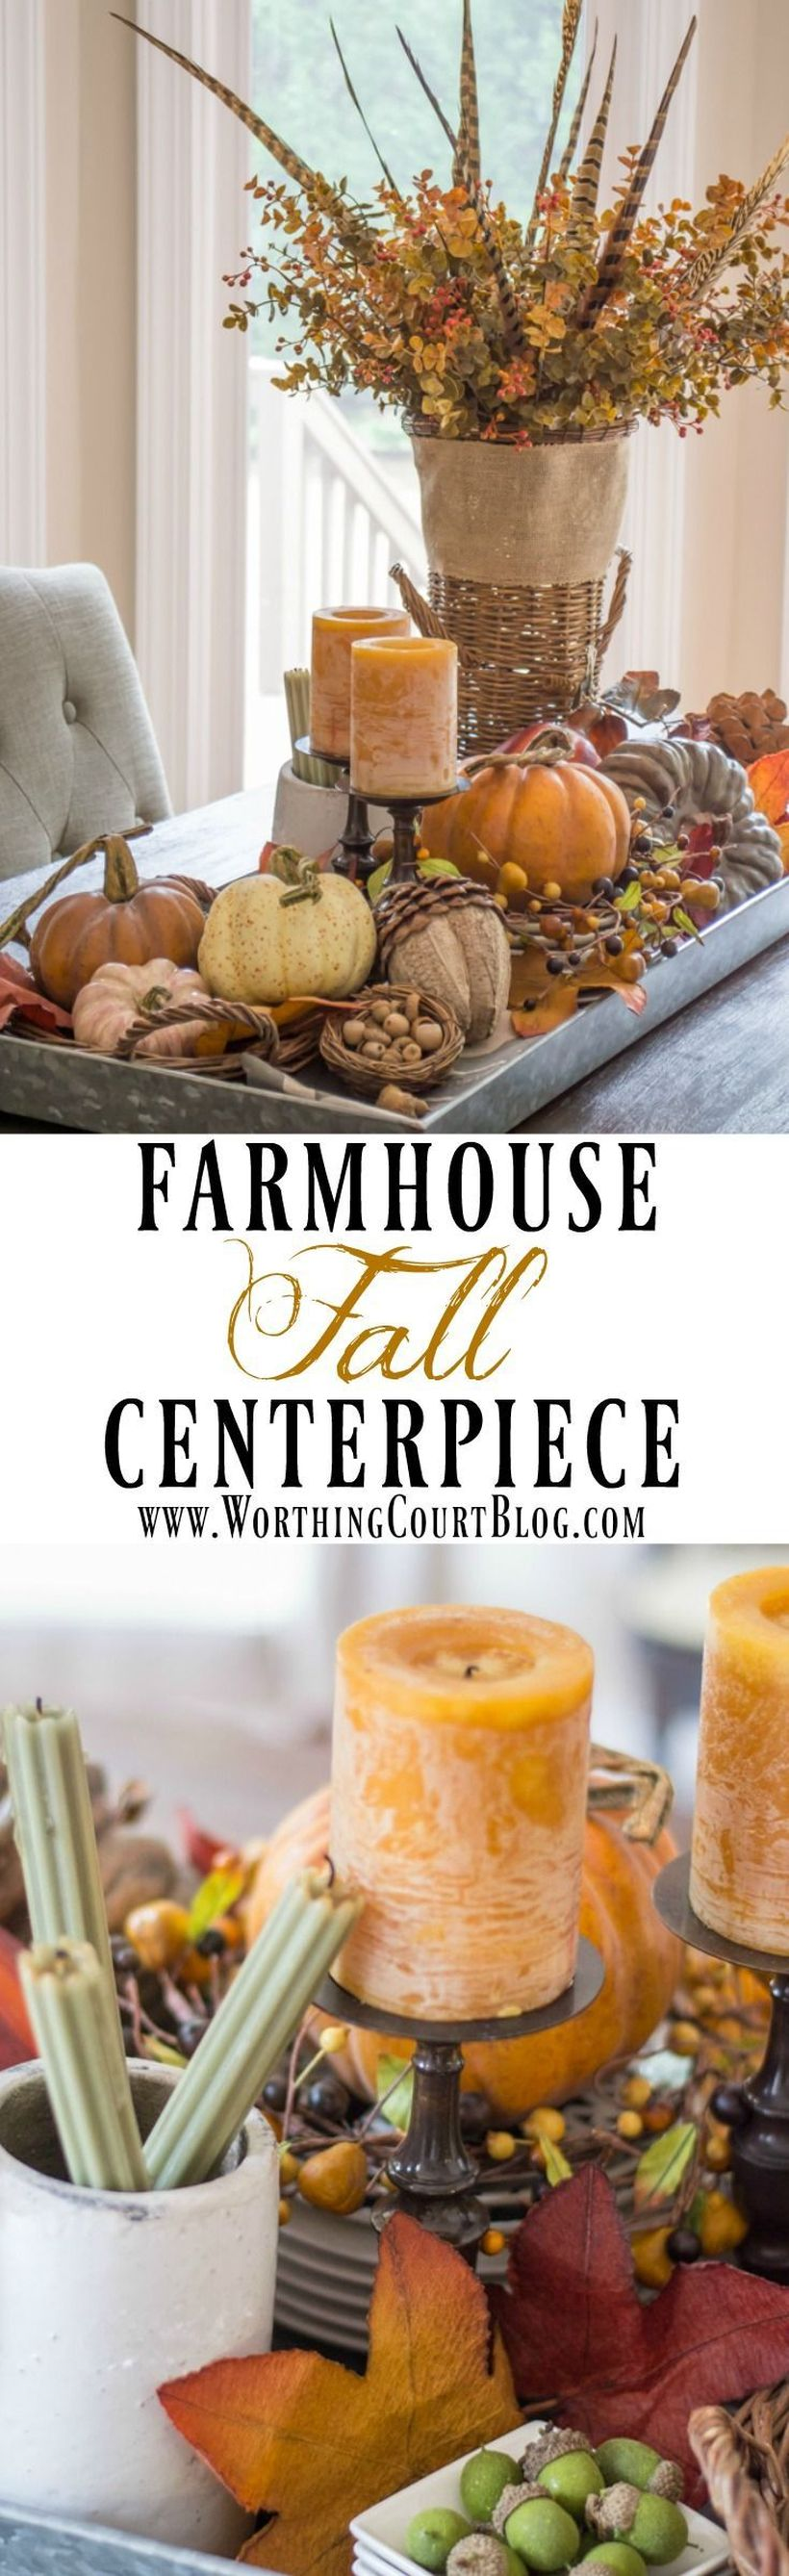 Trending Fall Home Decorating Ideas 10